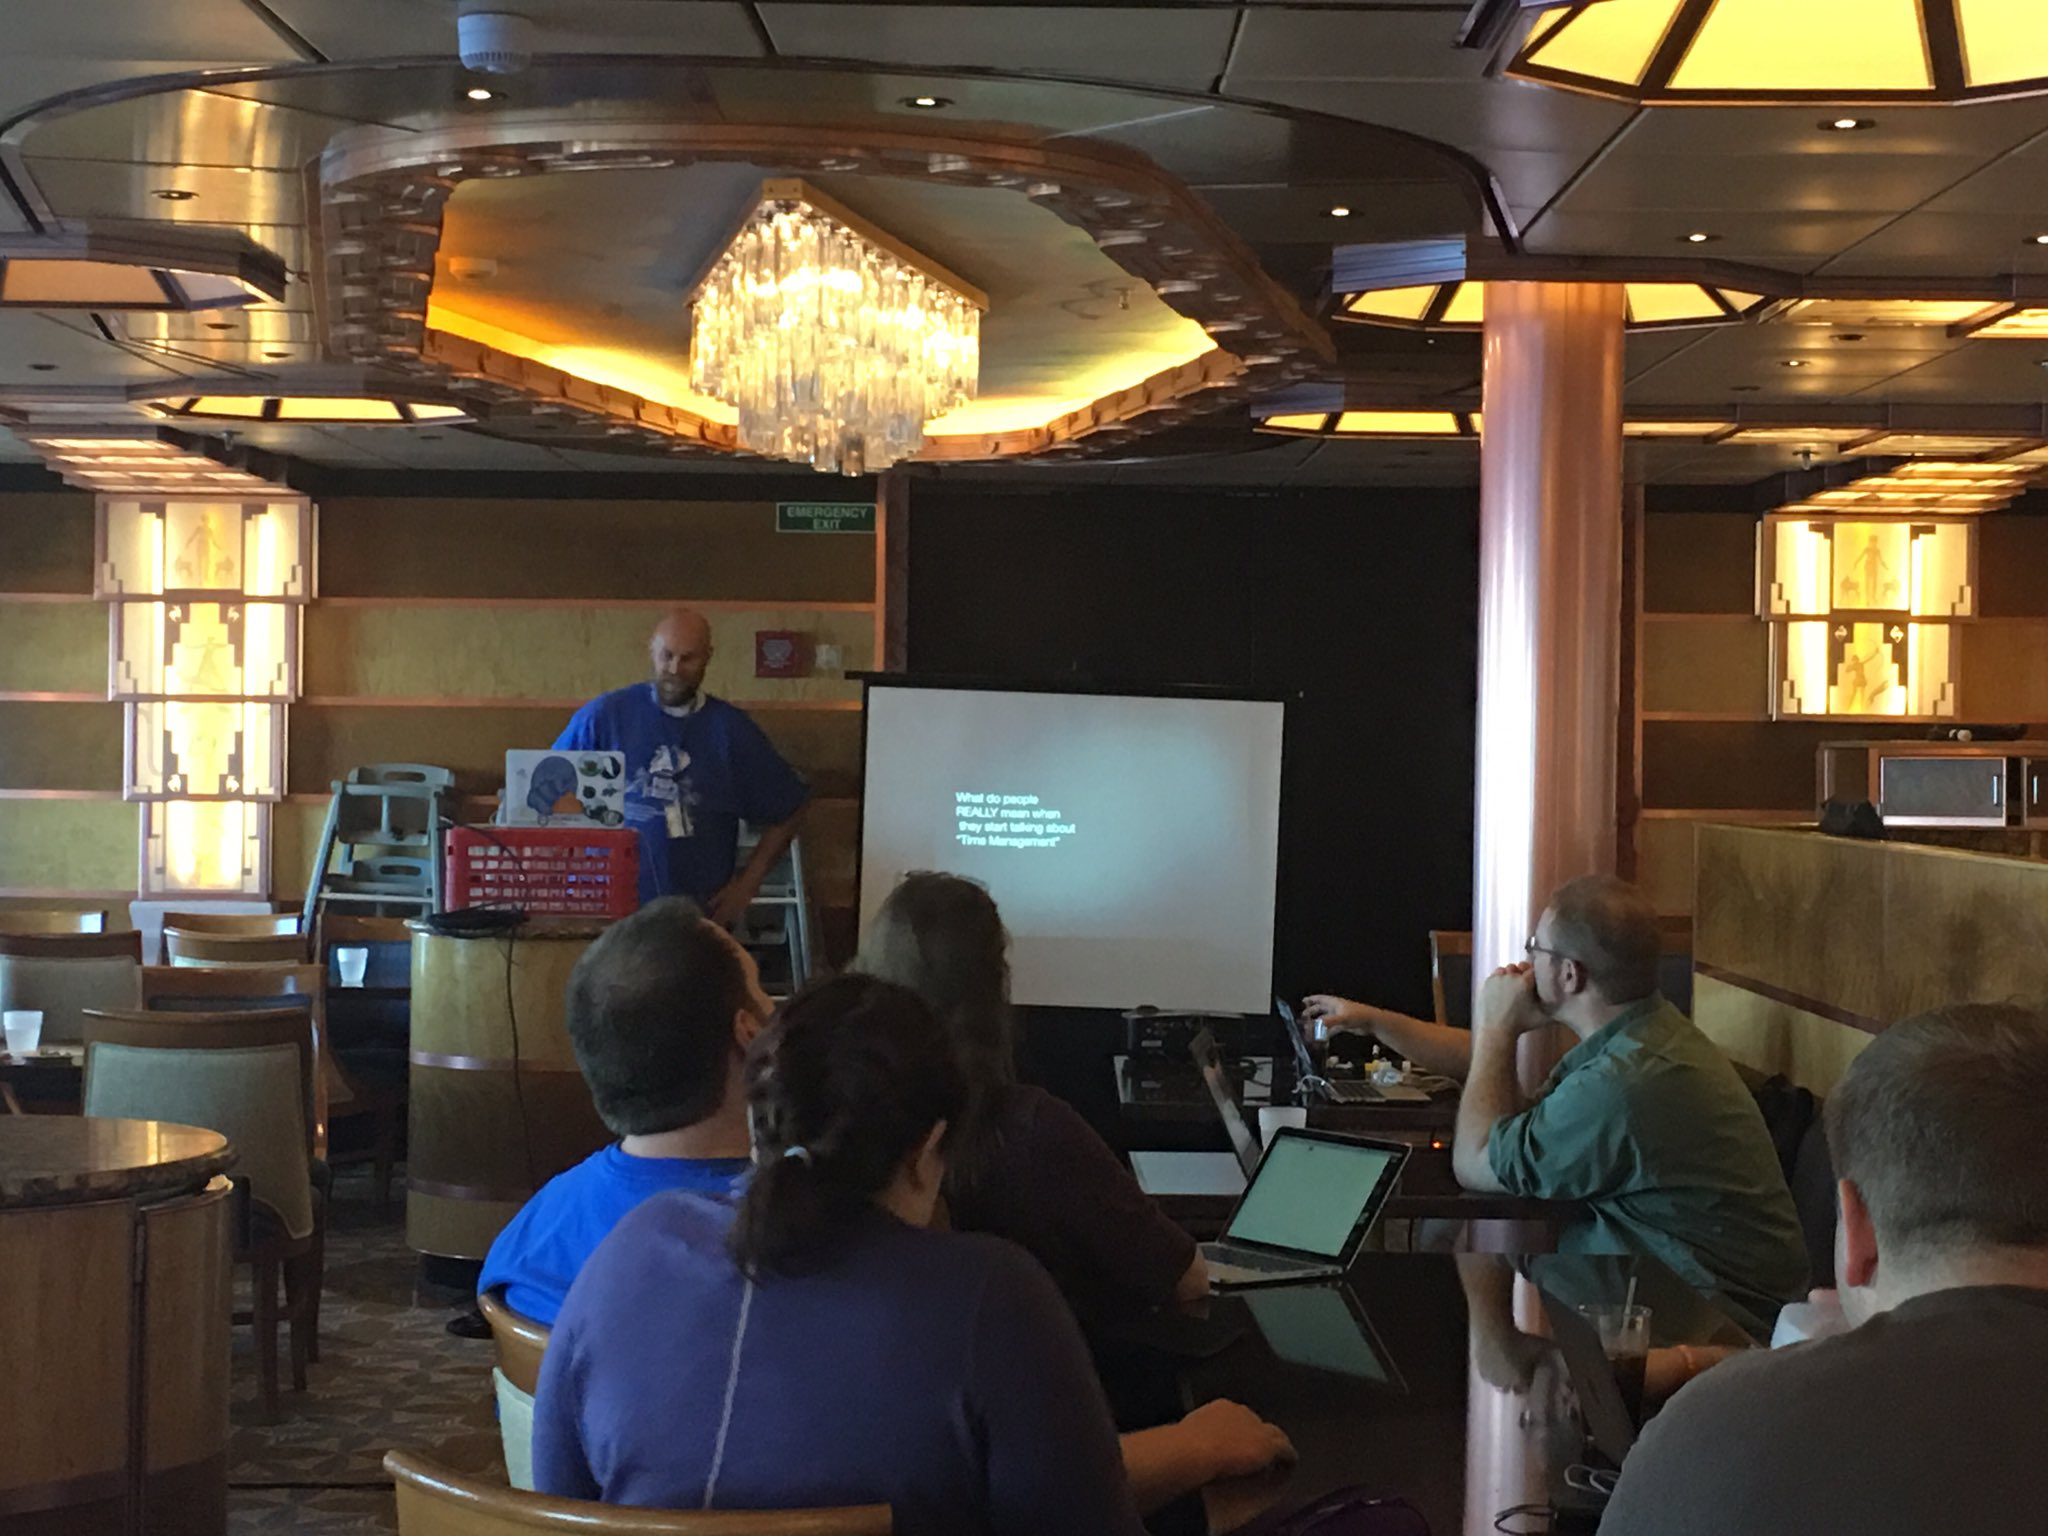 Chris Hartjes at #phpcruise (18th July 2016) talking about Time Management (Pic credit to Kevin Bruce)